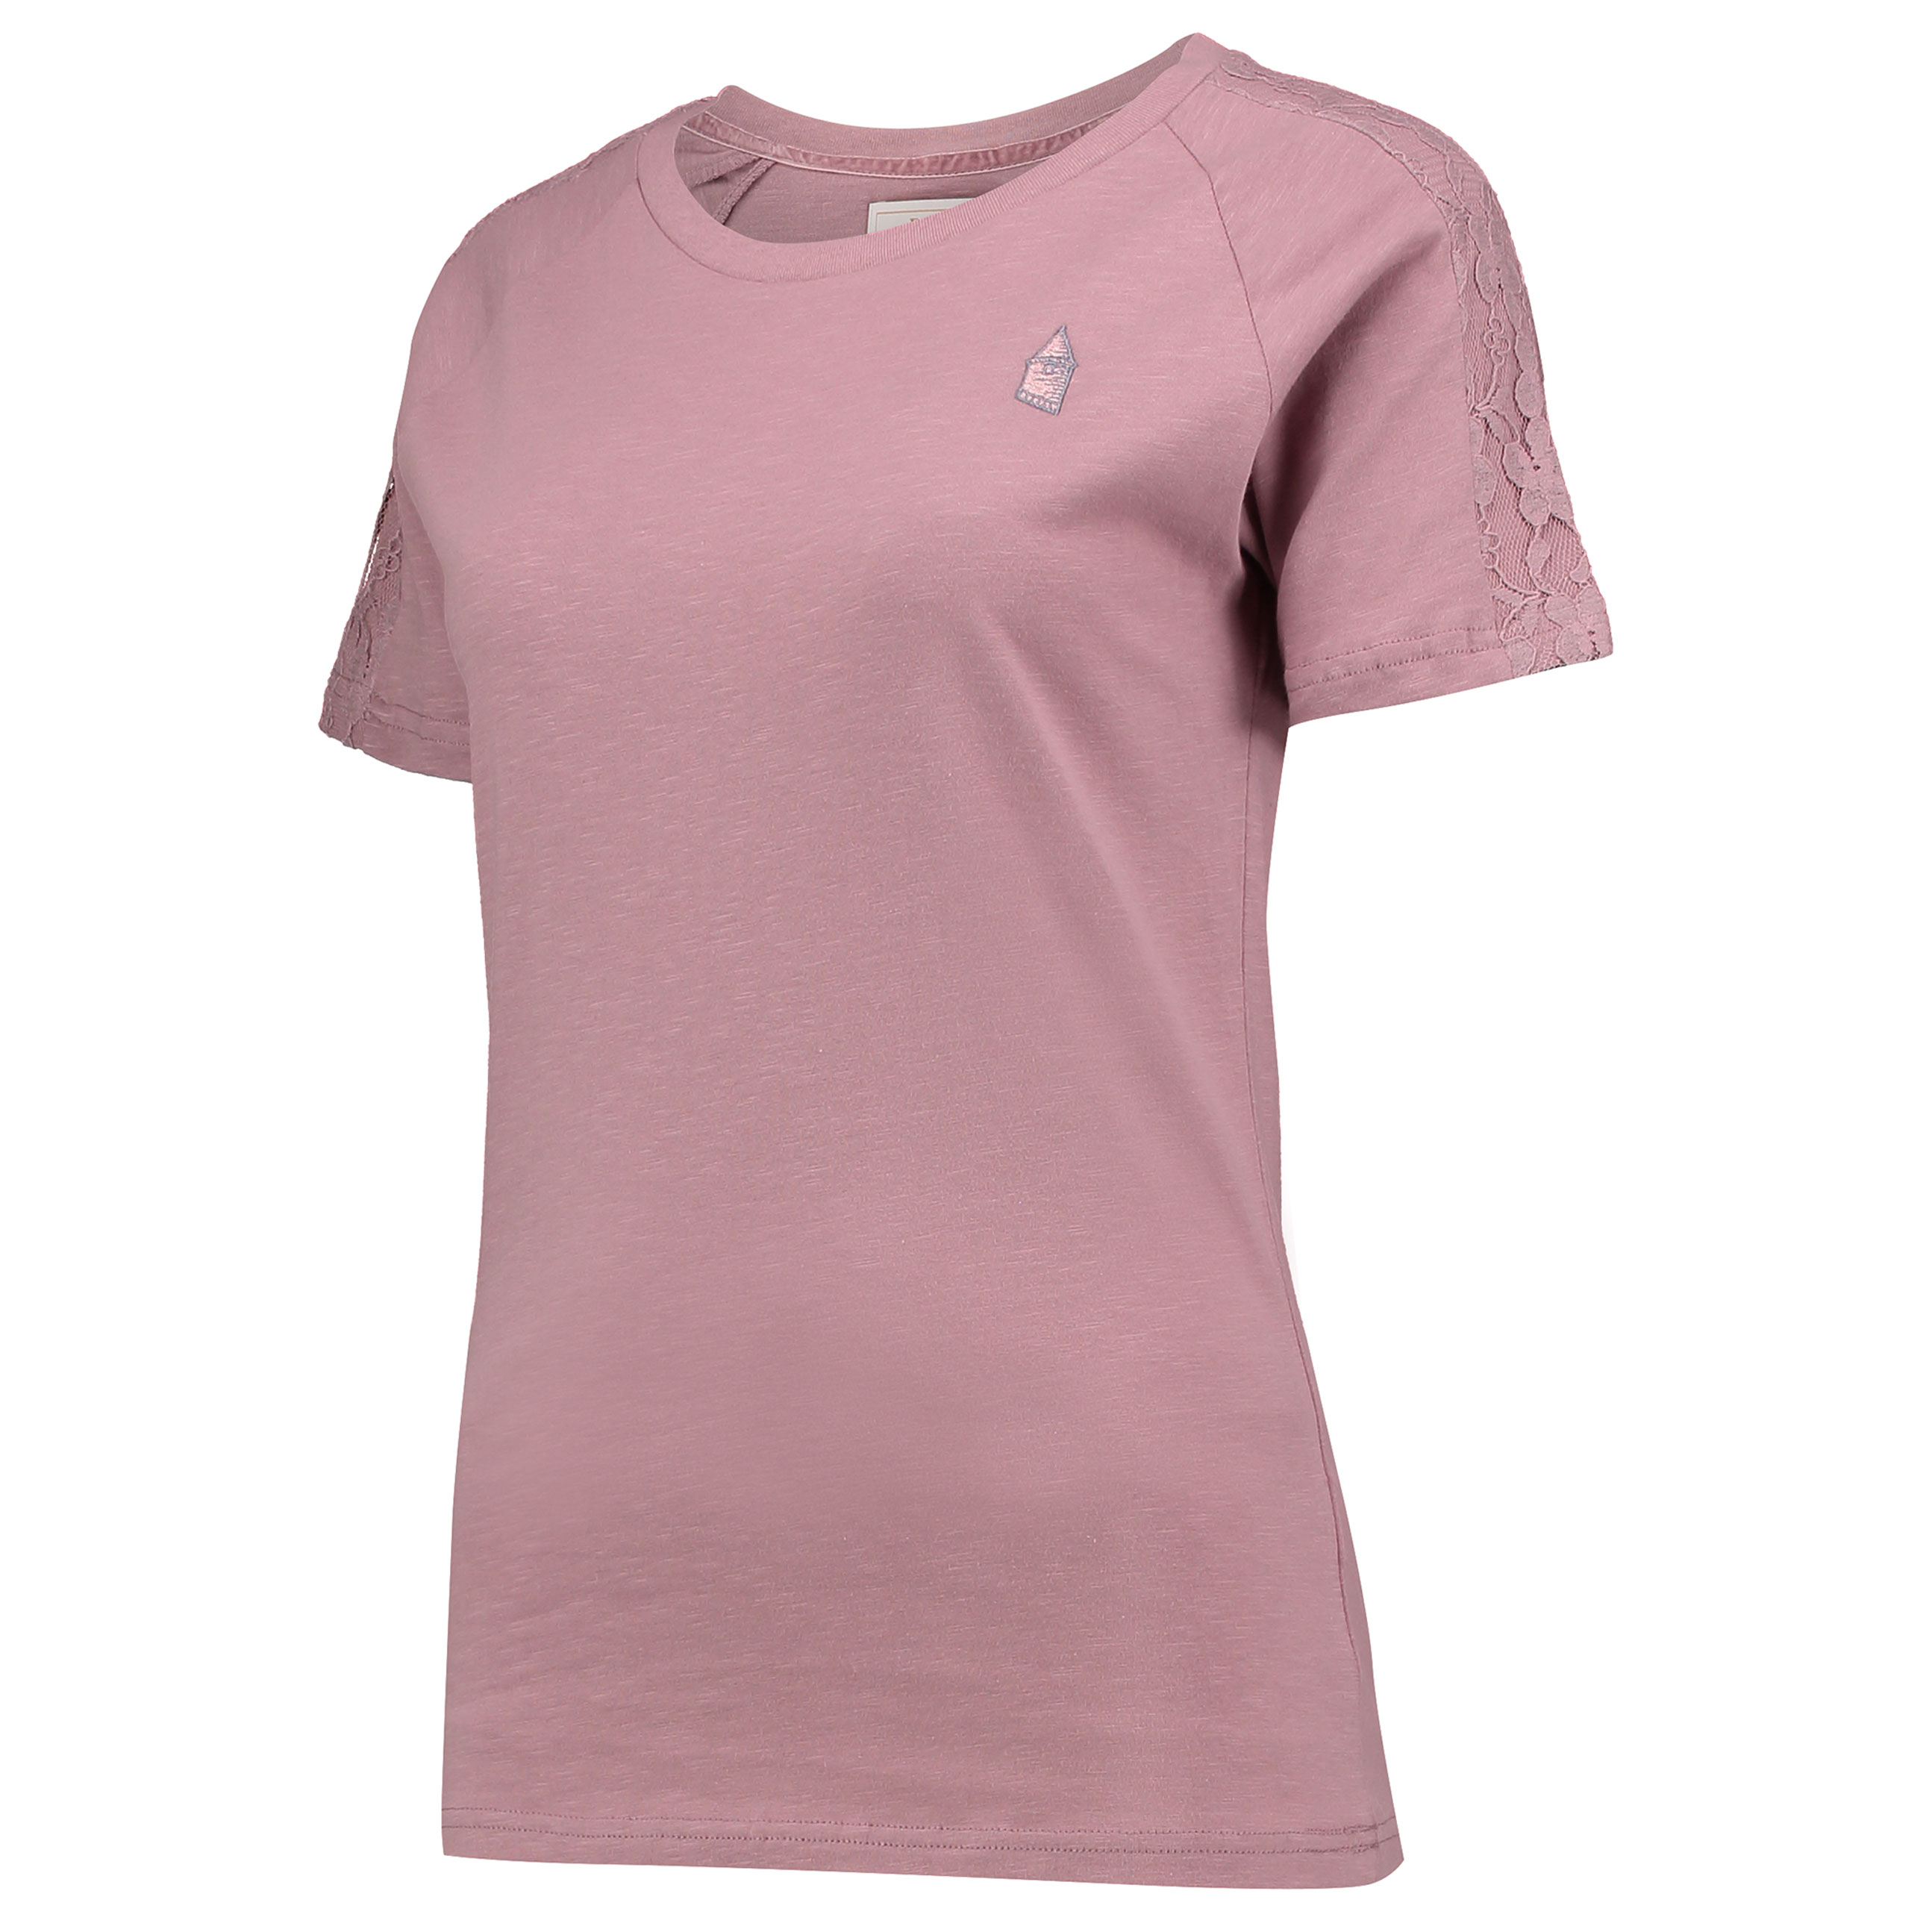 Everton Luxe Lace T-Shirt - Blush - Womens